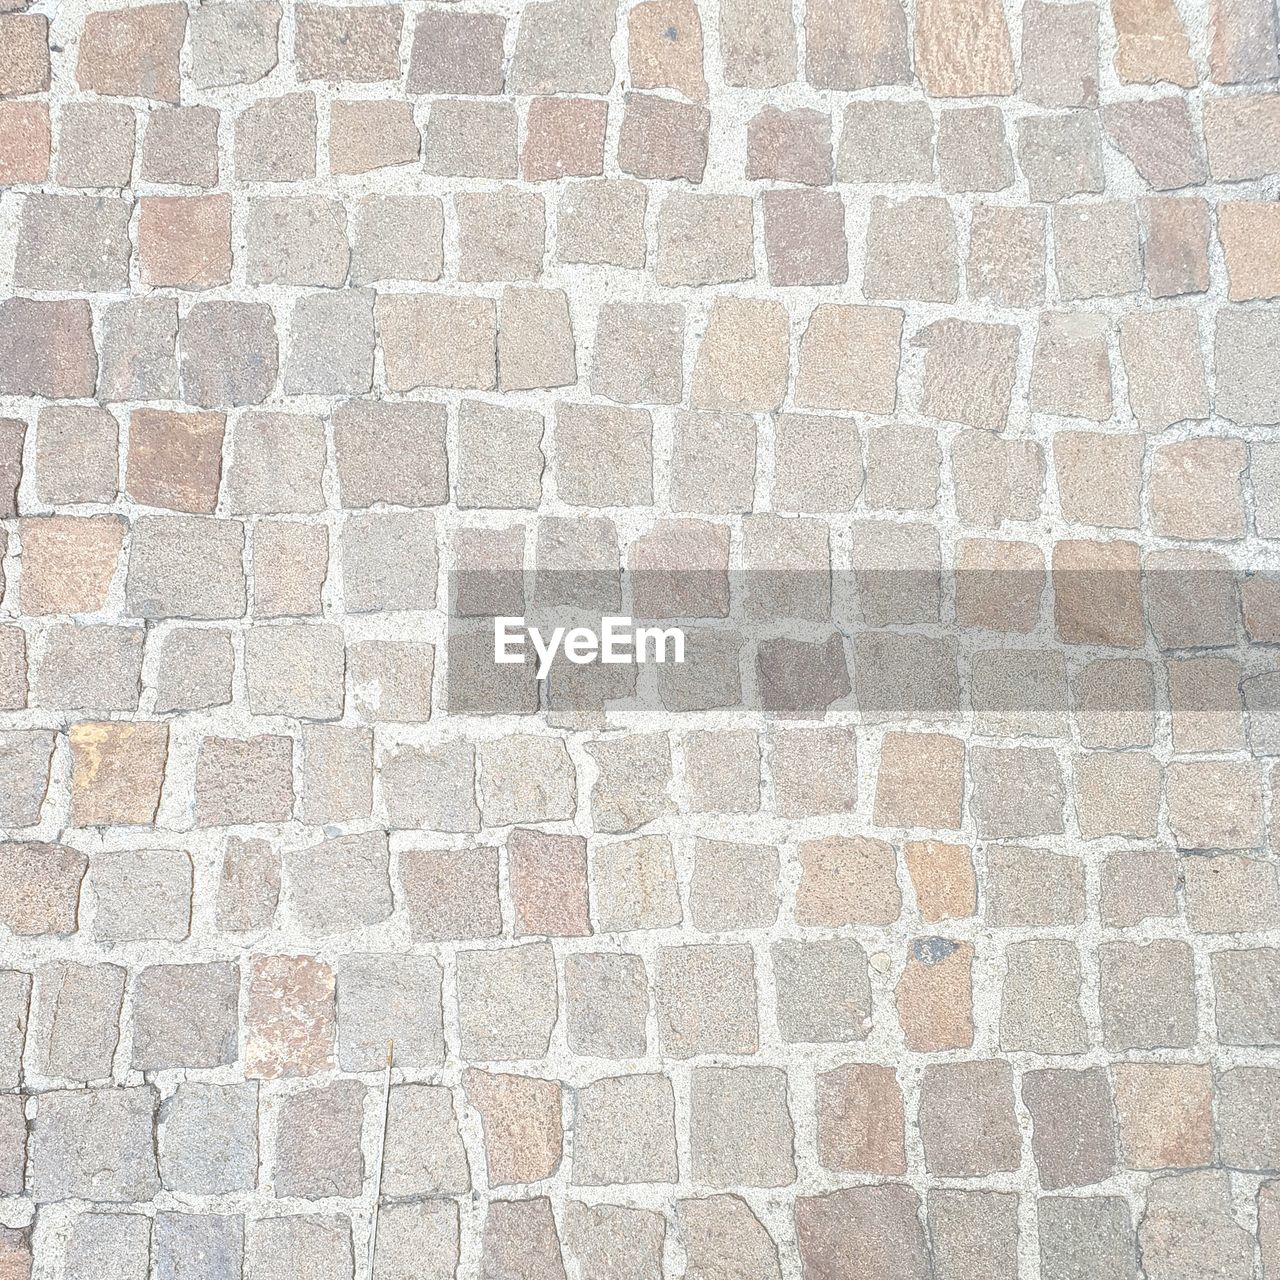 full frame, pattern, backgrounds, textured, built structure, architecture, no people, flooring, wall - building feature, tile, design, wall, brick, stone material, close-up, day, shape, rough, repetition, stone, tiled floor, outdoors, paving stone, textured effect